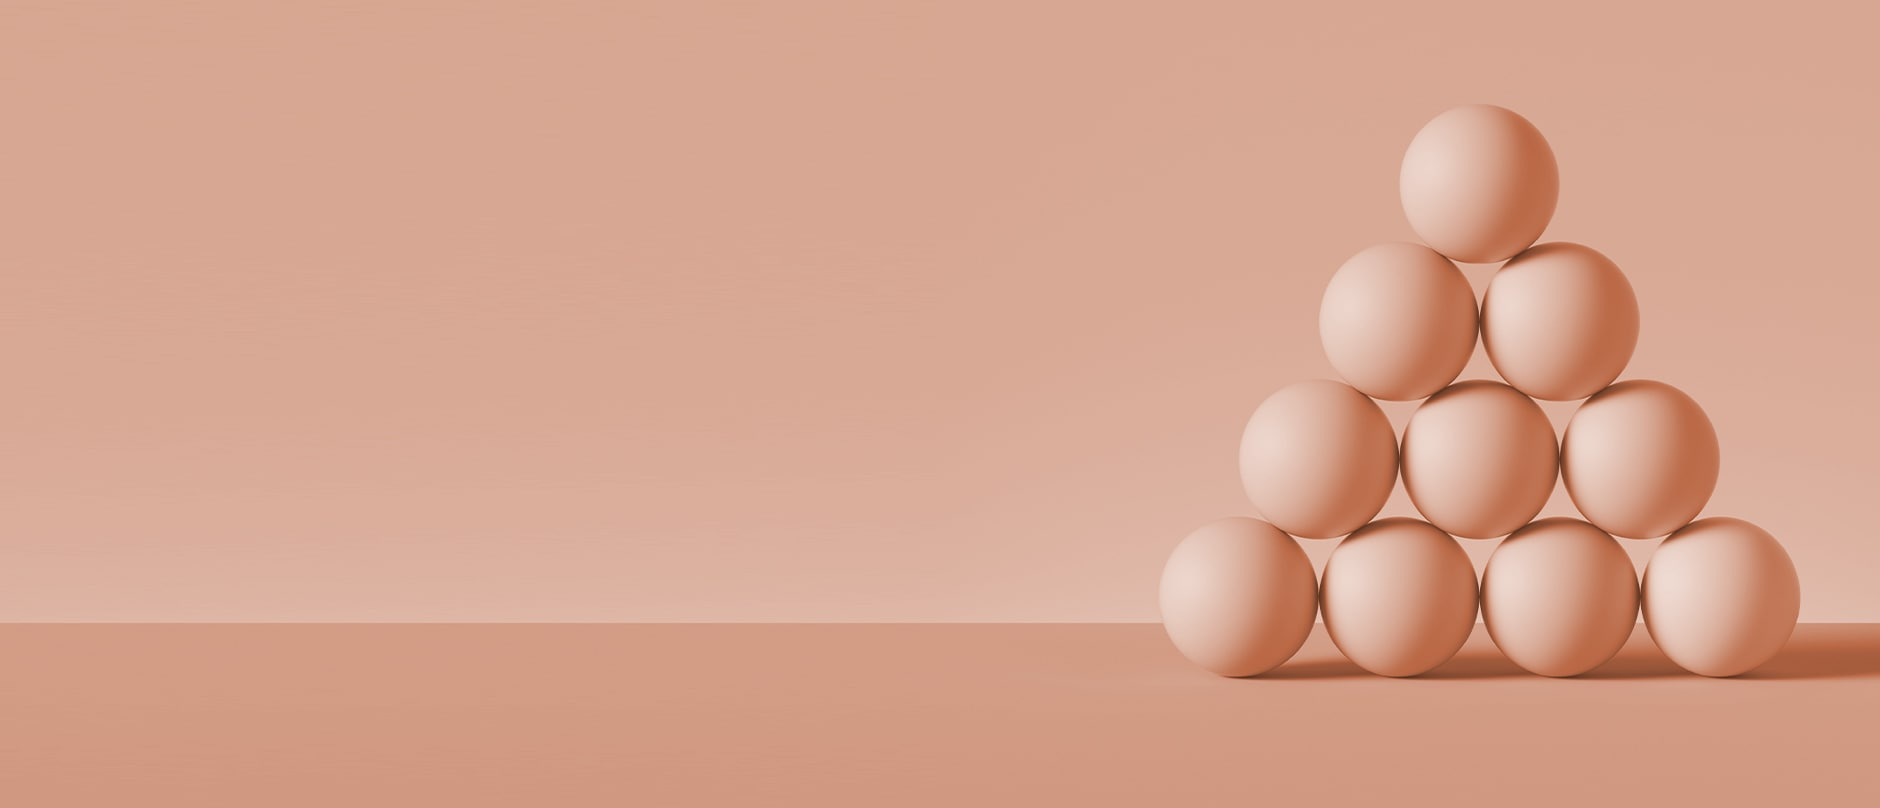 10 peach spheres arranged in a pyramid with peach background